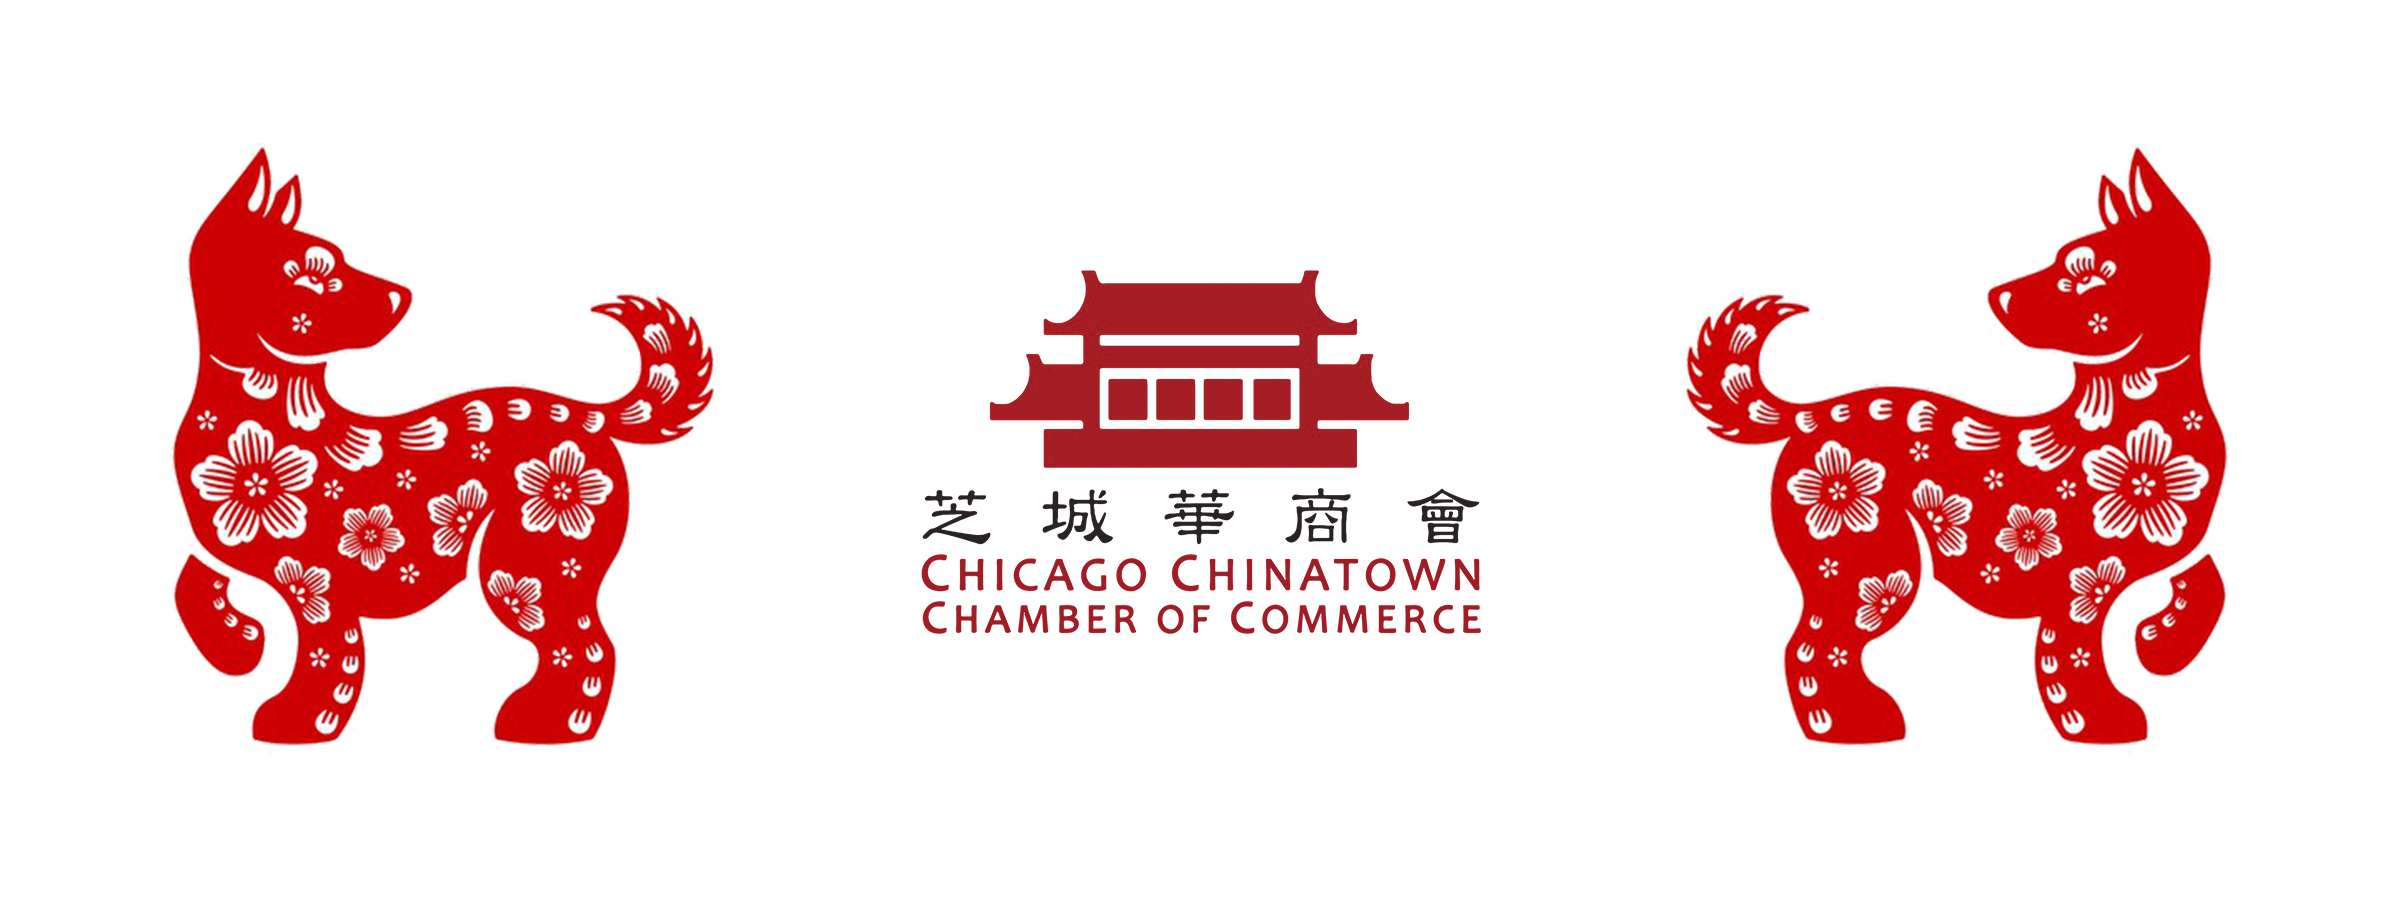 2018 citywide lunar new year events - Chinese New Year 1994